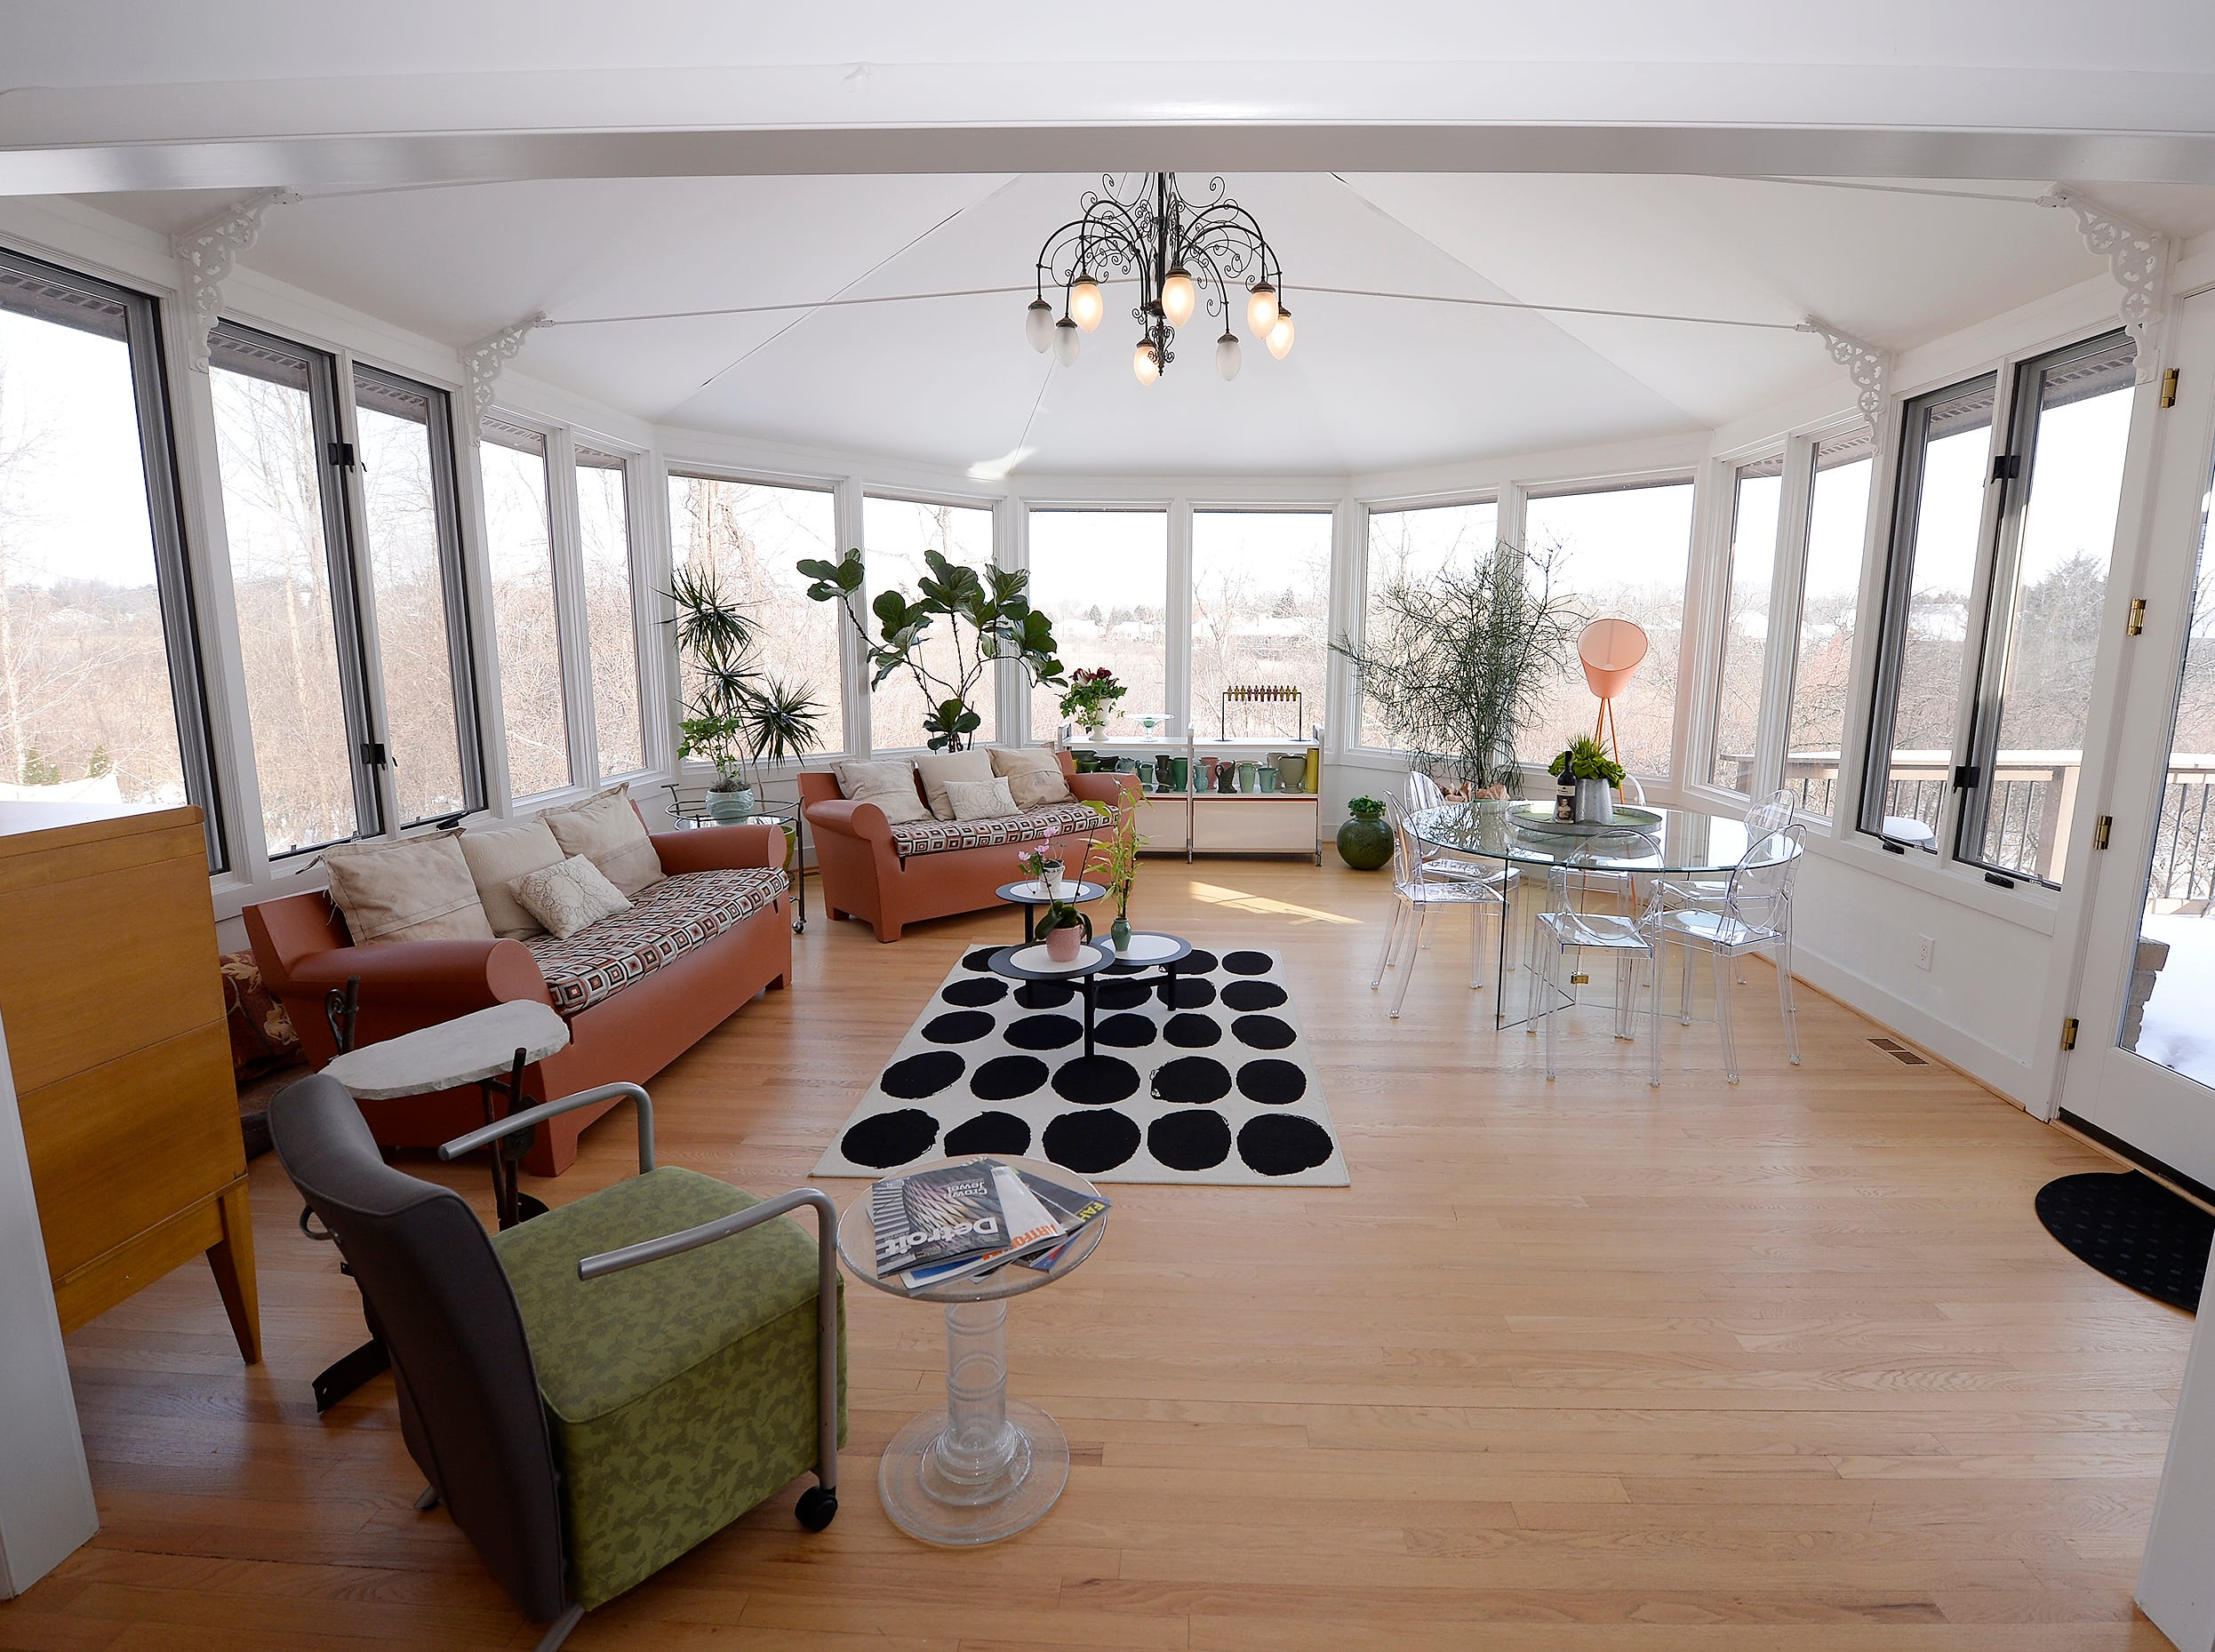 Conservatory room with open space and windows.